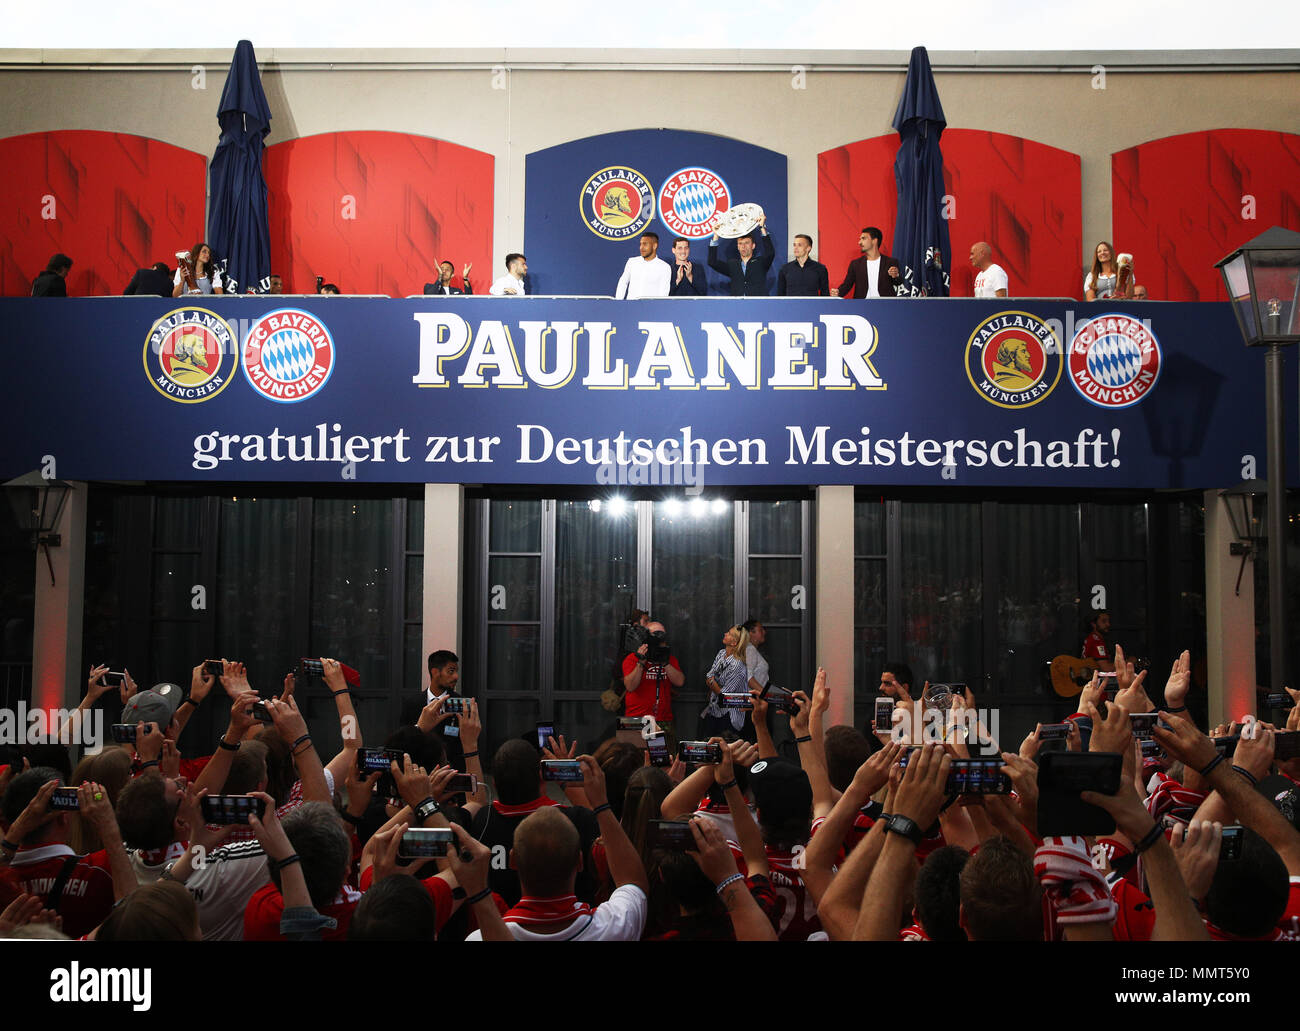 HANDOUT - 12 May 2018, Germany, Munich: Thomas Mueller (C), player of FC Bayern Munich, celebrates winning the championship together with the fans at the Paulaner beer garden at the Nockherberg. Earlier though, a home defeat dampened the joy over the 28th championship title. Photo: Adam Pretty/FCB/Getty Images /dpa - ATTENTION: editorial use only and only if the credit mentioned above is referenced in full Credit: dpa picture alliance/Alamy Live News Stock Photo